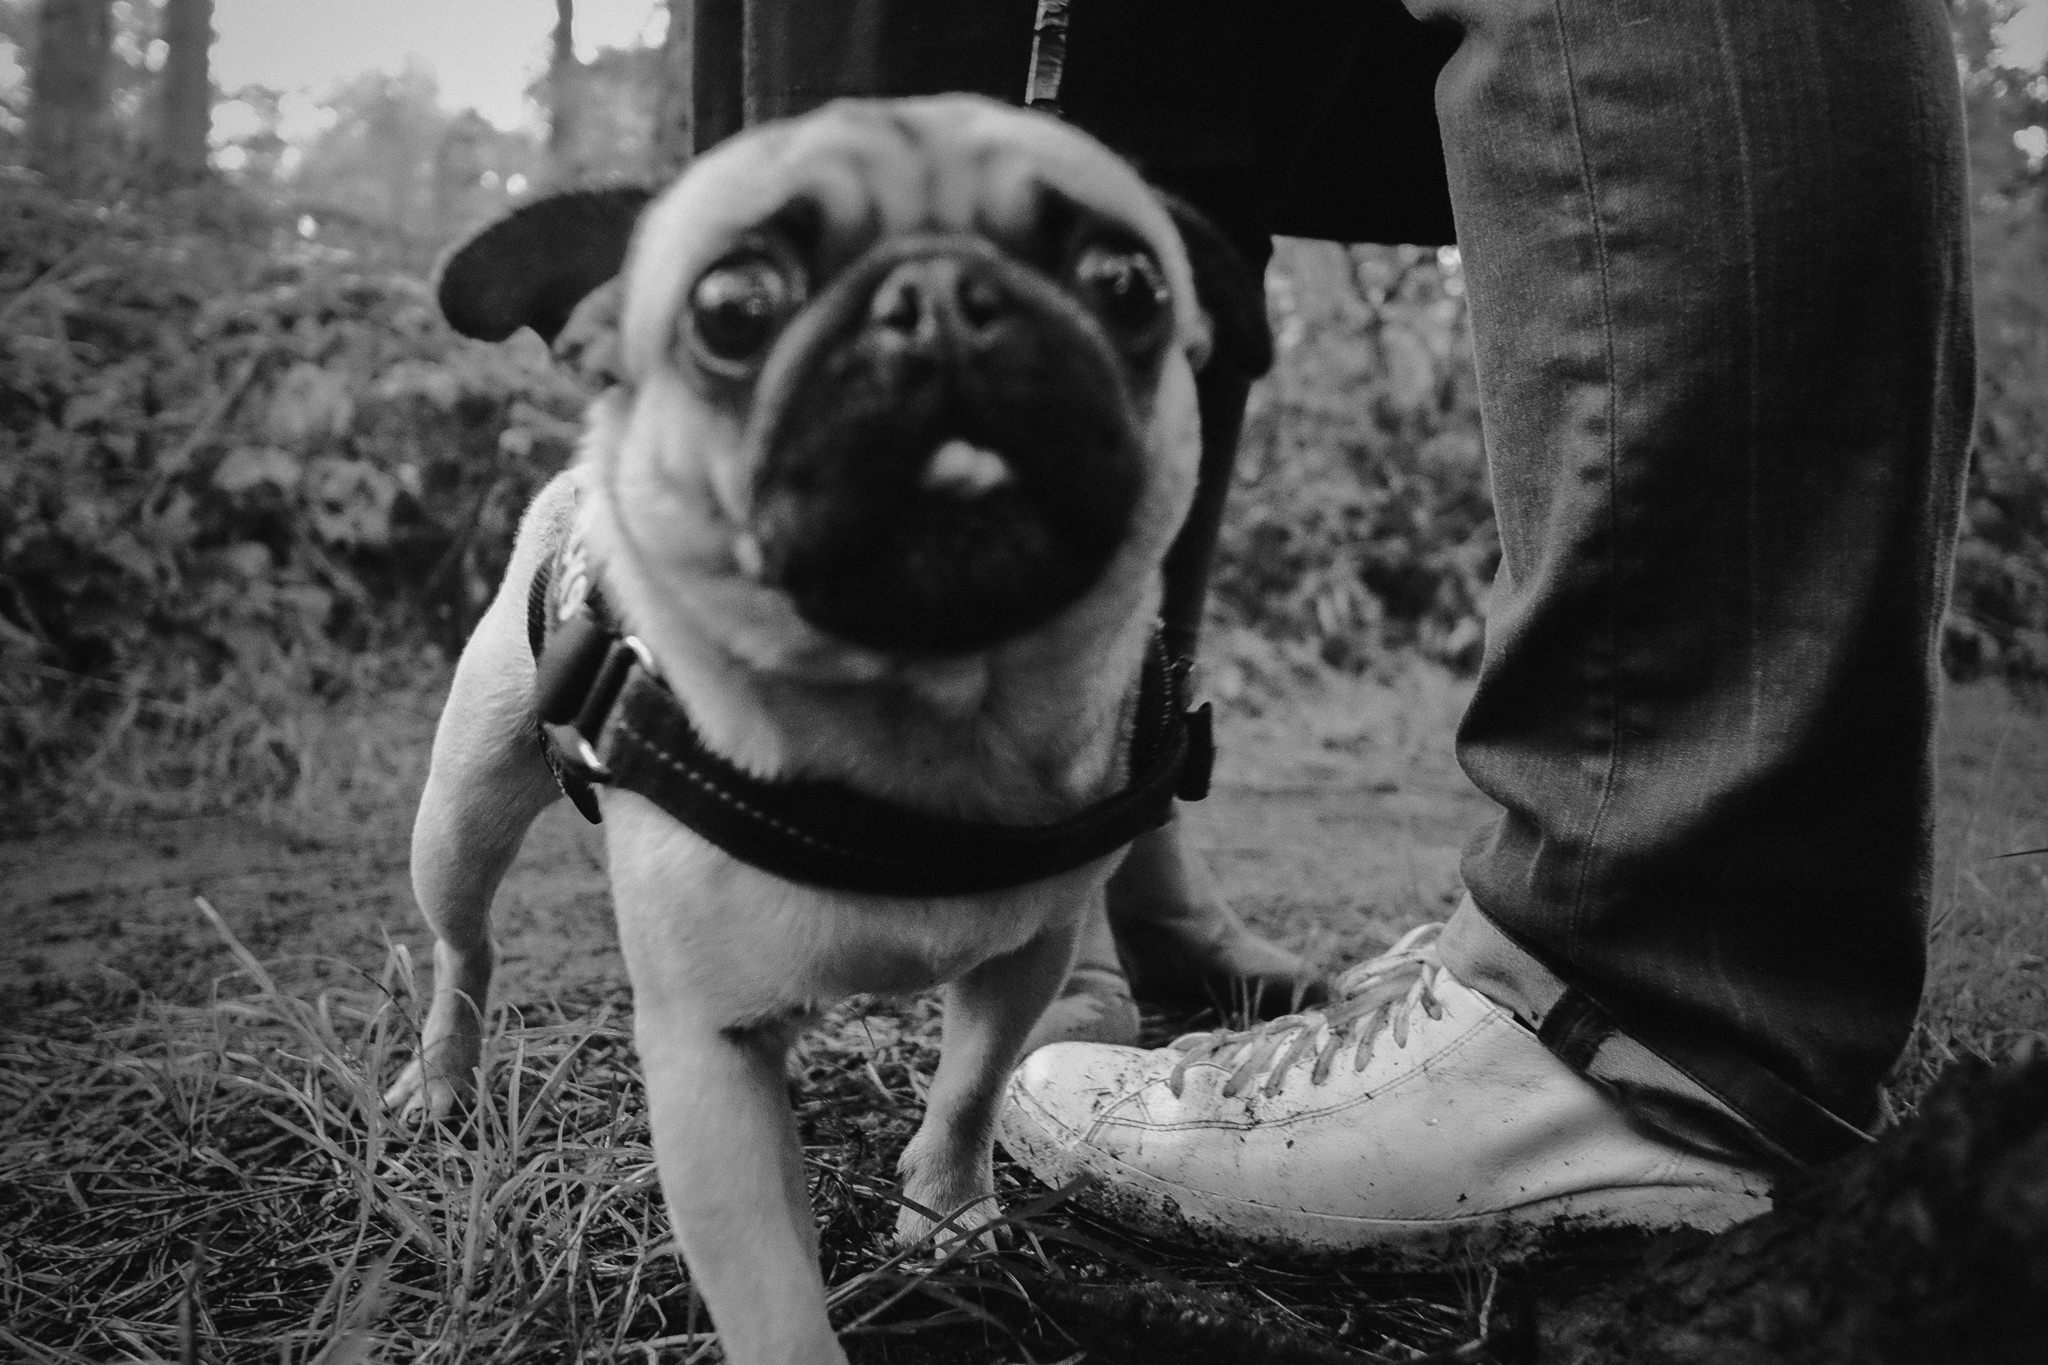 Blurry black and white close up of dog with engaged couples feet behind